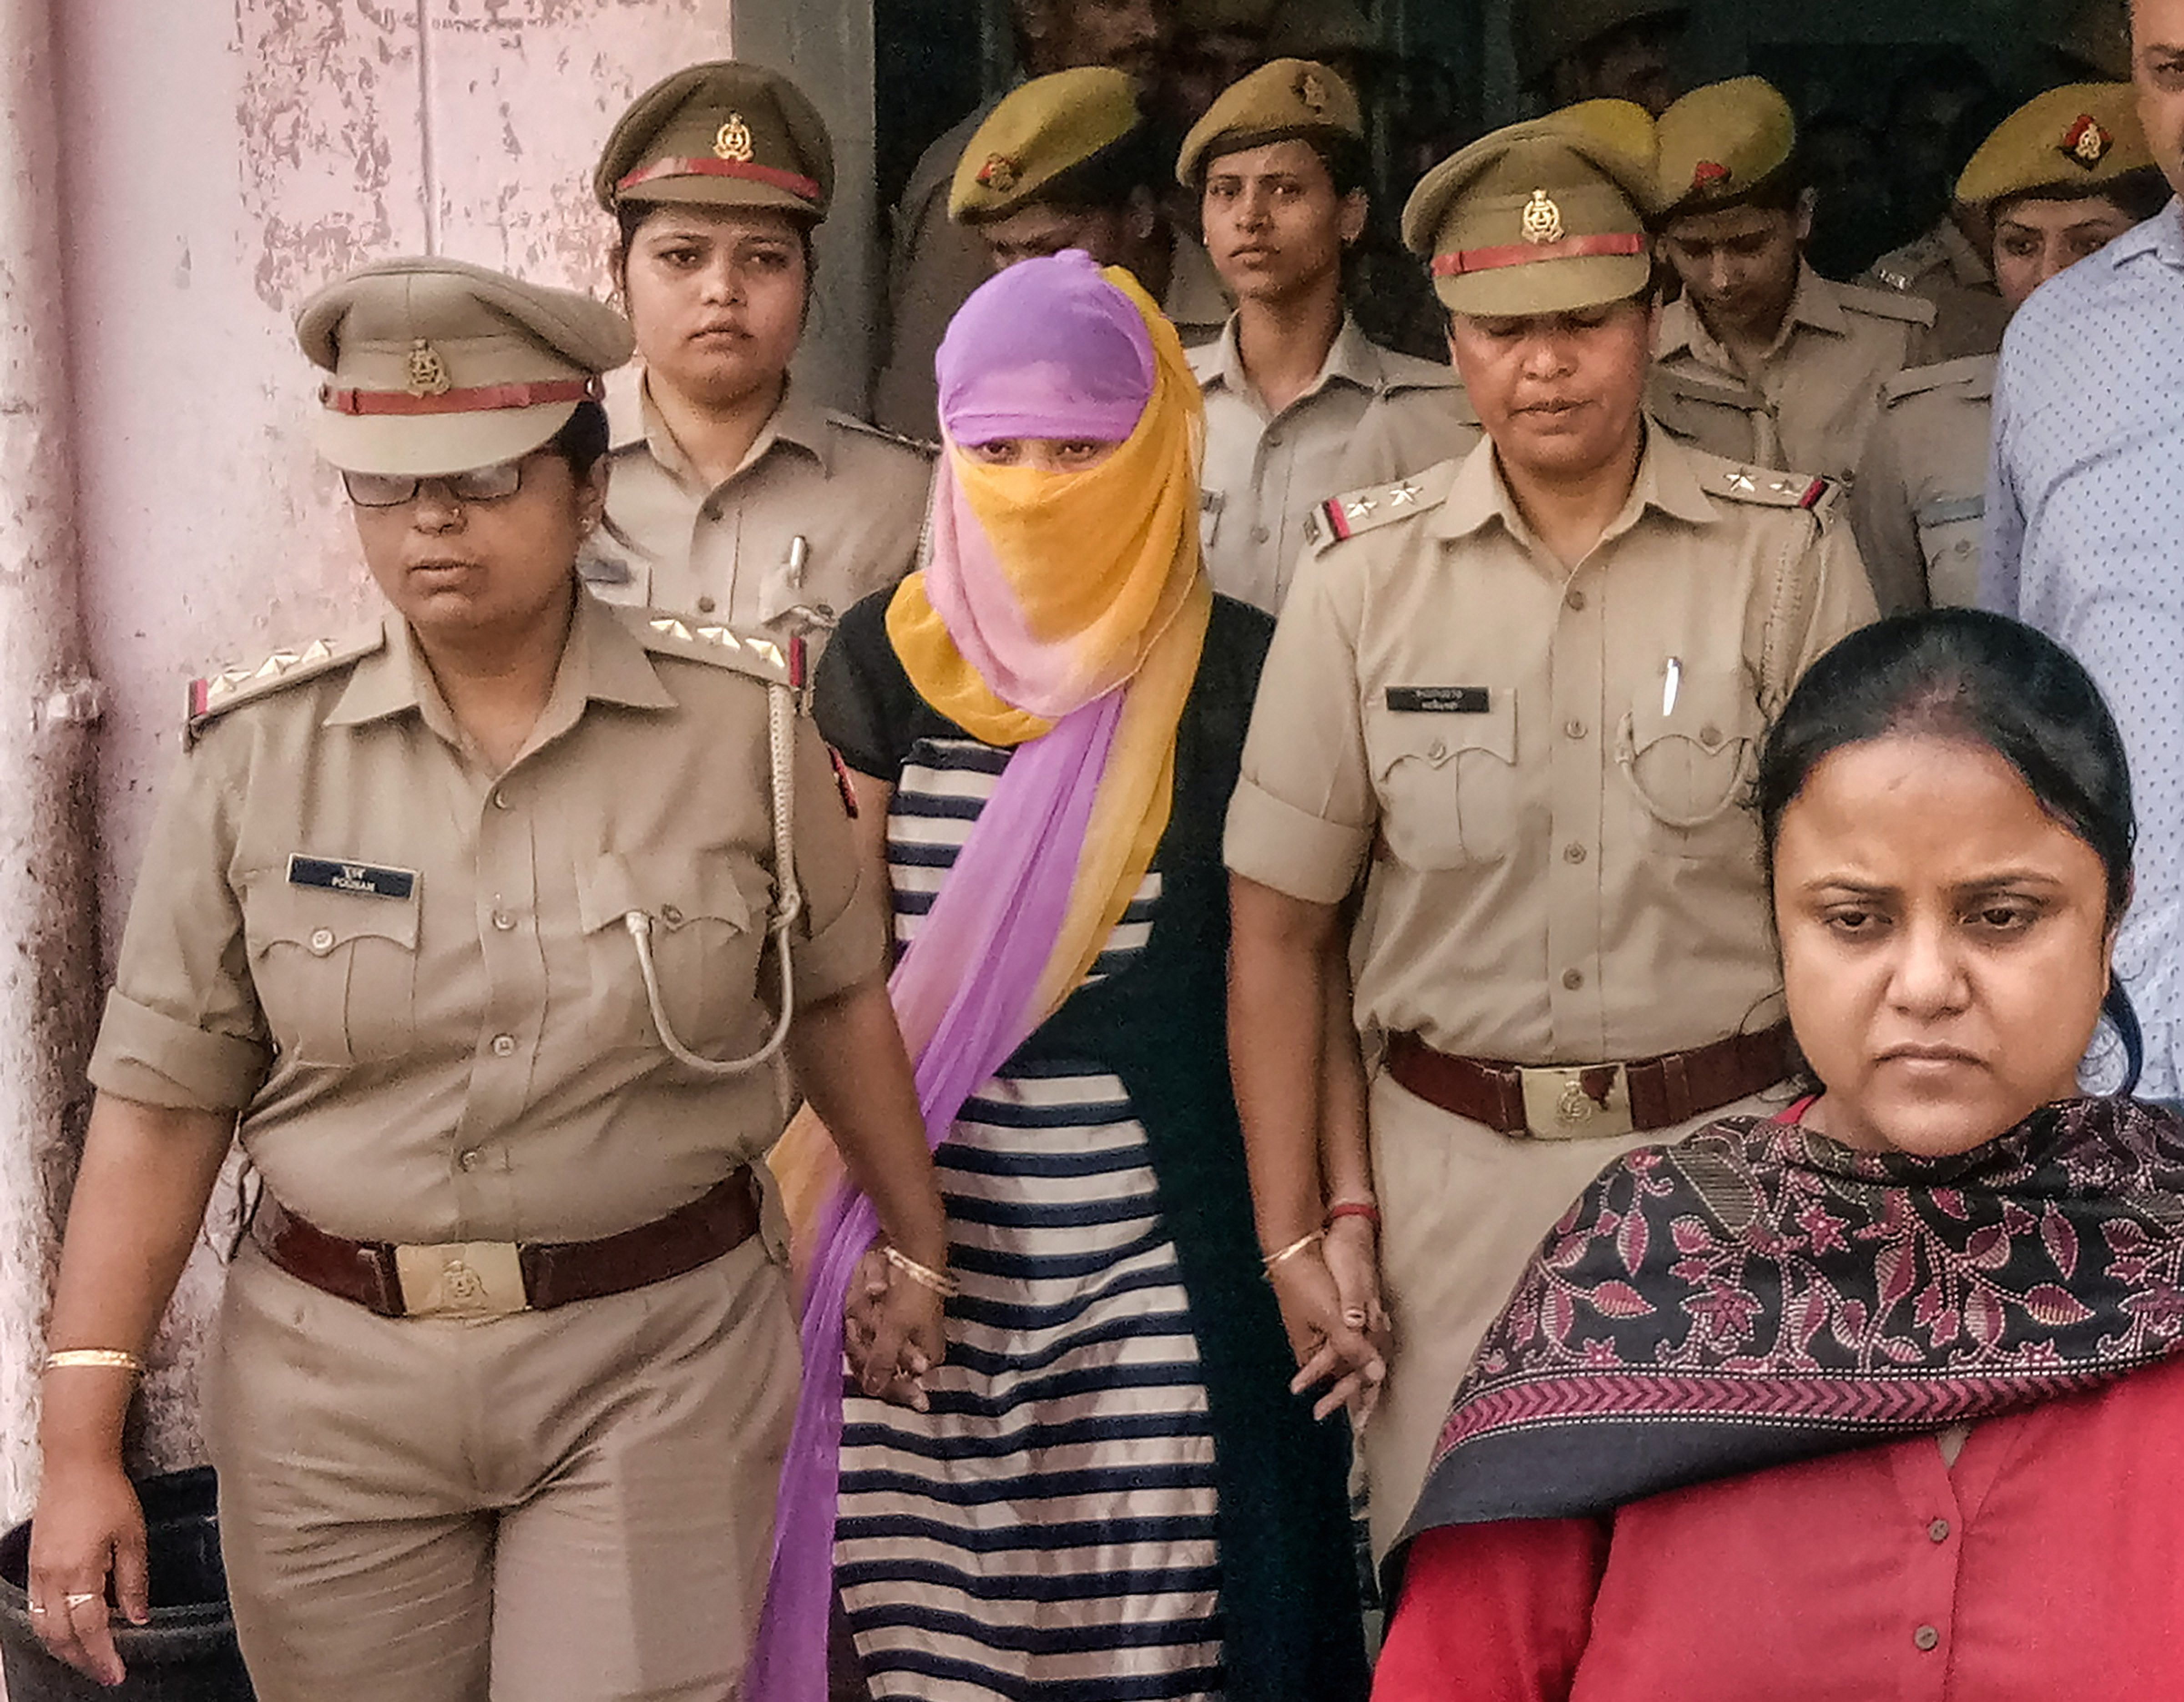 The law student (face covered), who accused former Union minister Chinmayanand of sexual misconduct and harassment, walks out of a government hospital after her medical examination, in Shahjahanpur, Wednesday, September 25, 2019.